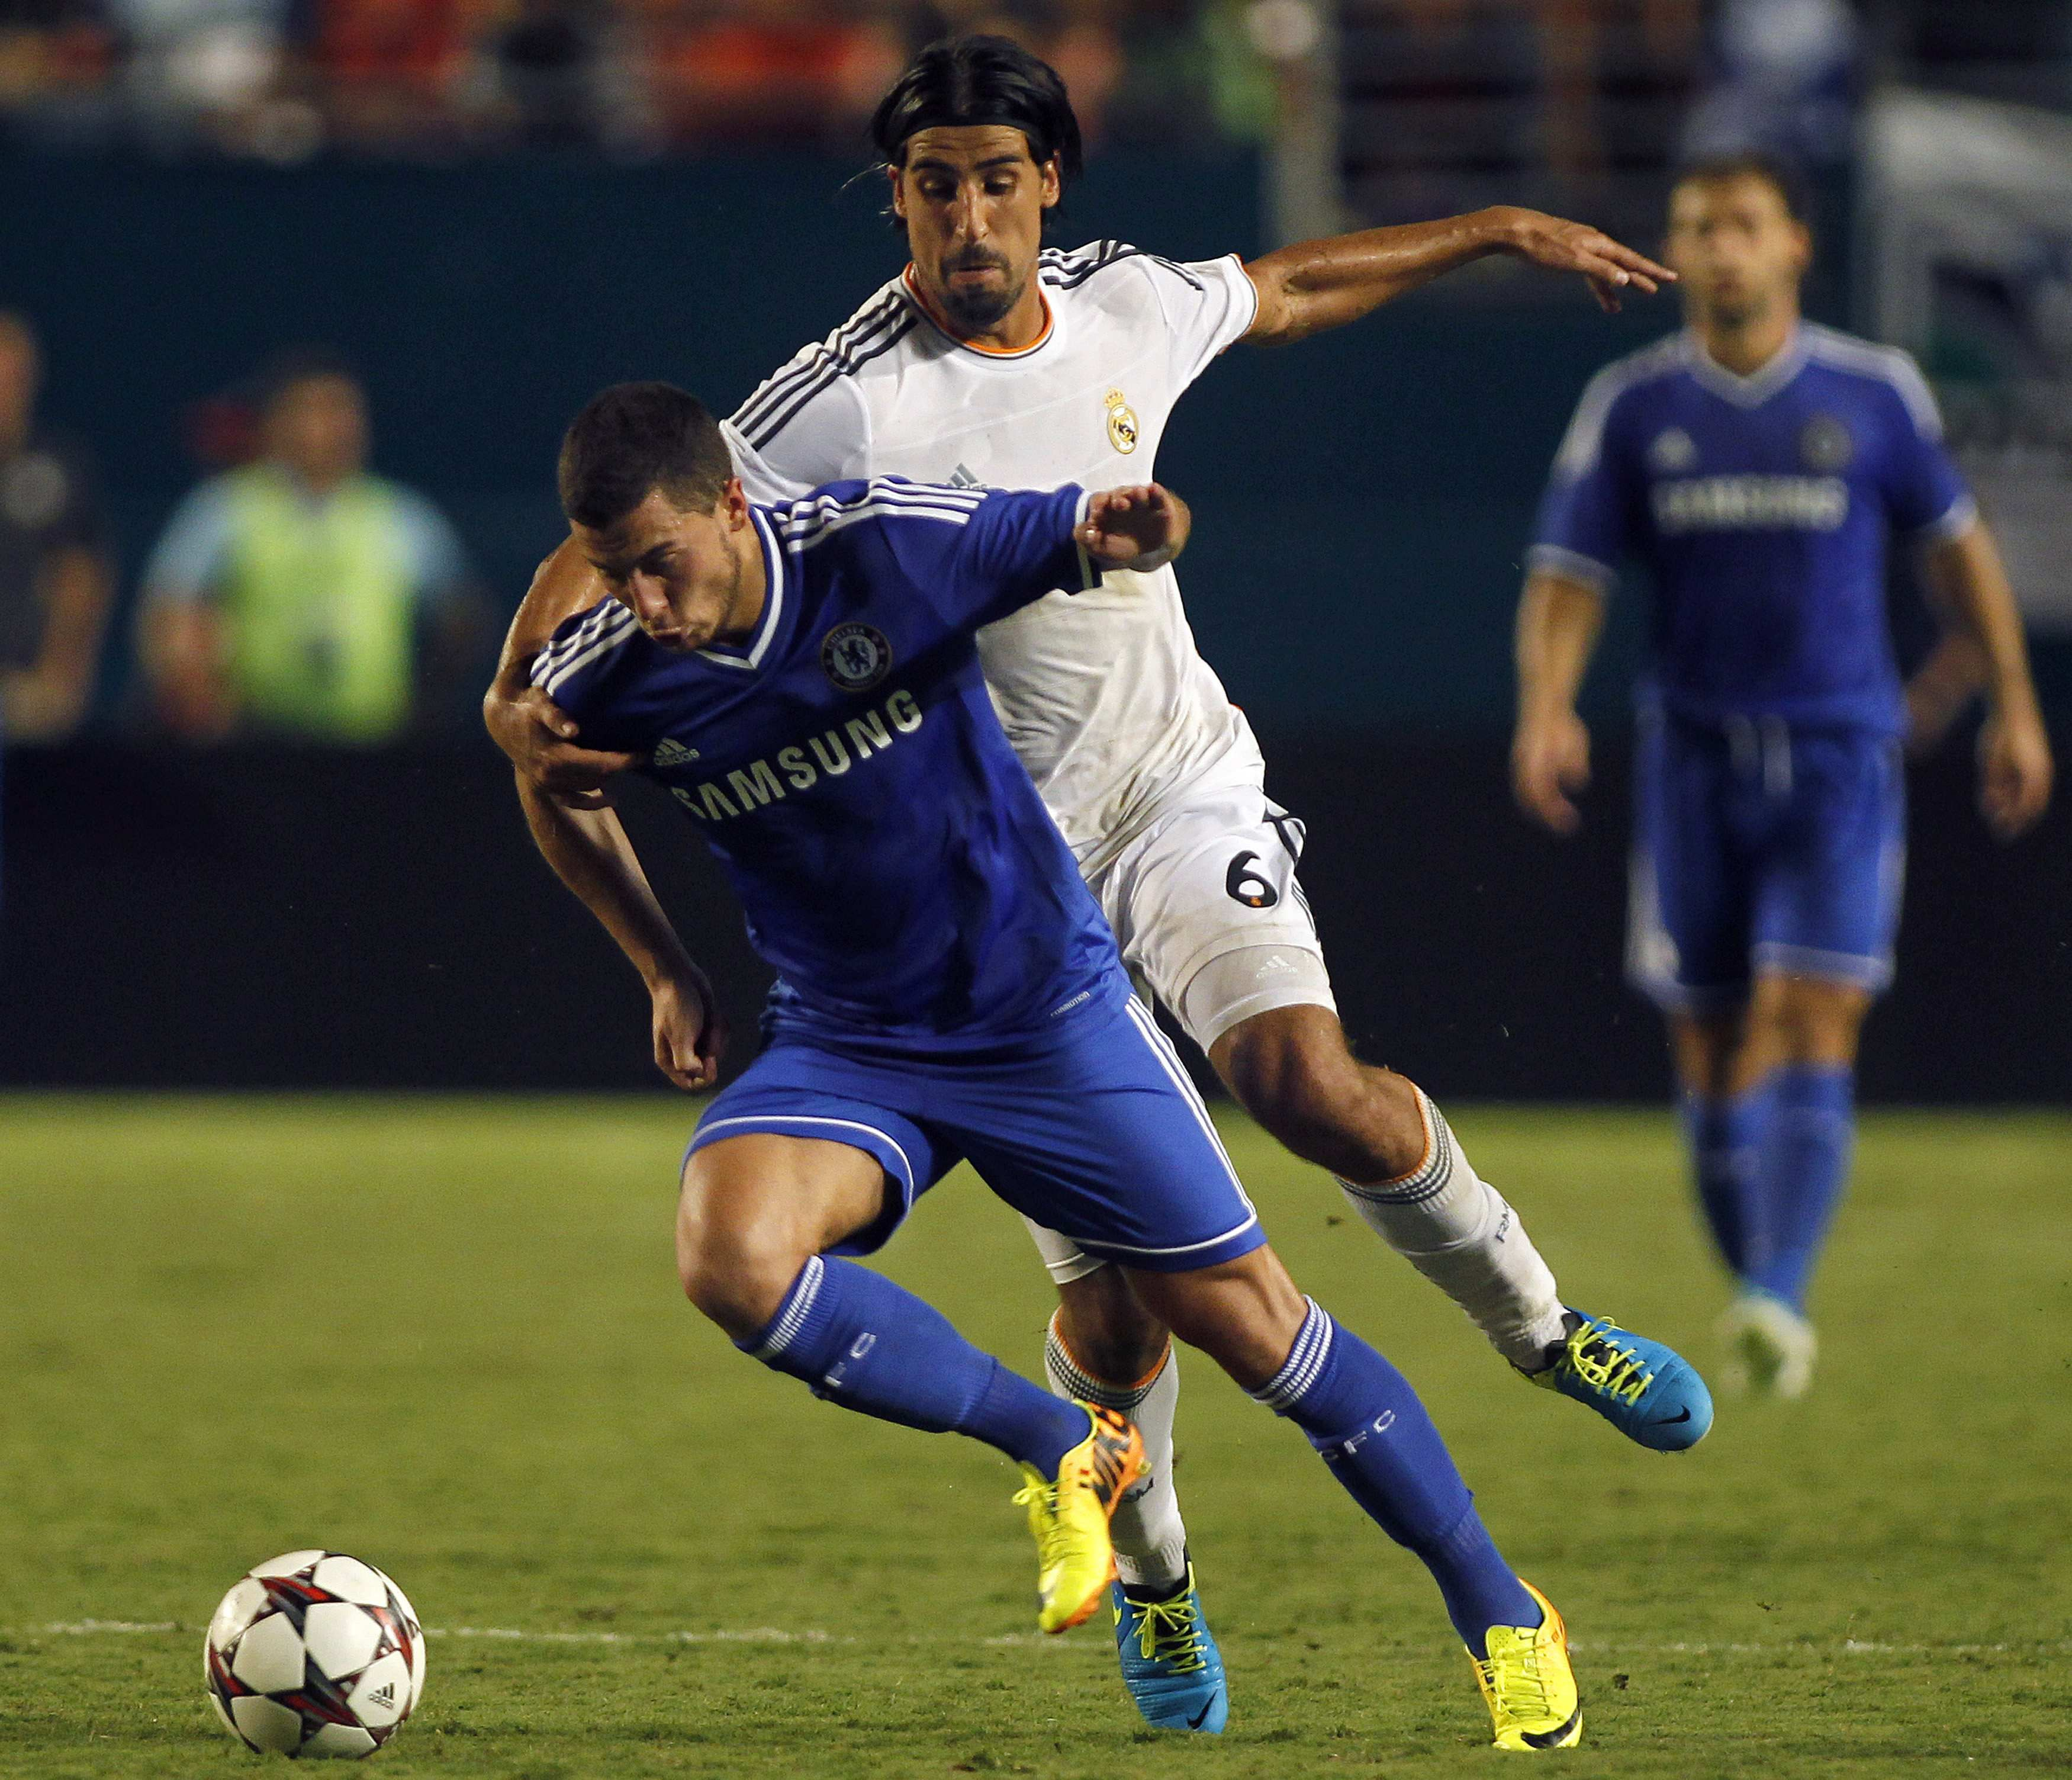 Chelsea Fc Latest News: Madrid's Midfield Destructor Would Be Perfect Foil For